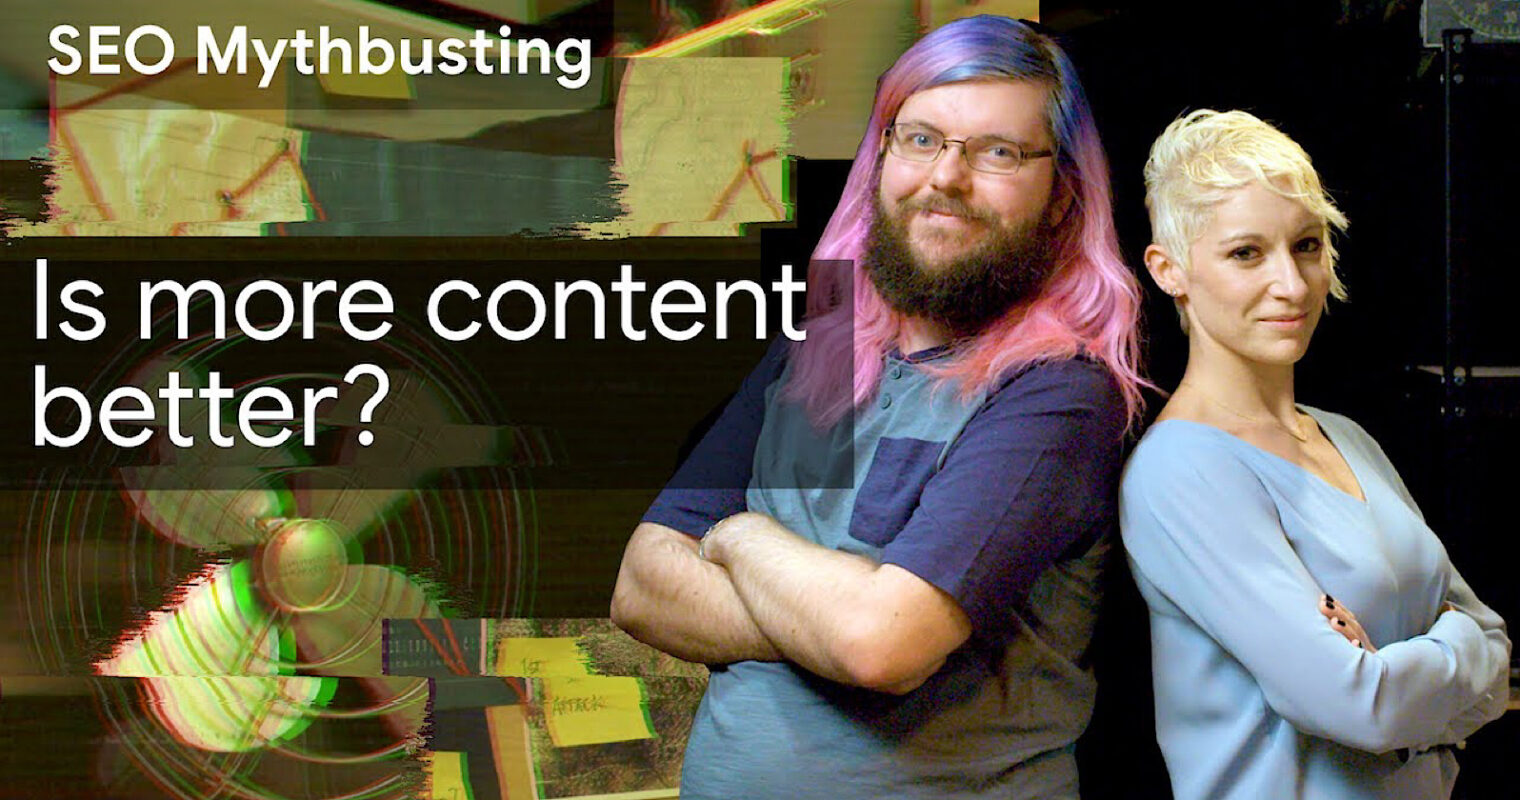 Google SEO Mythbusting: Is More Content Better?